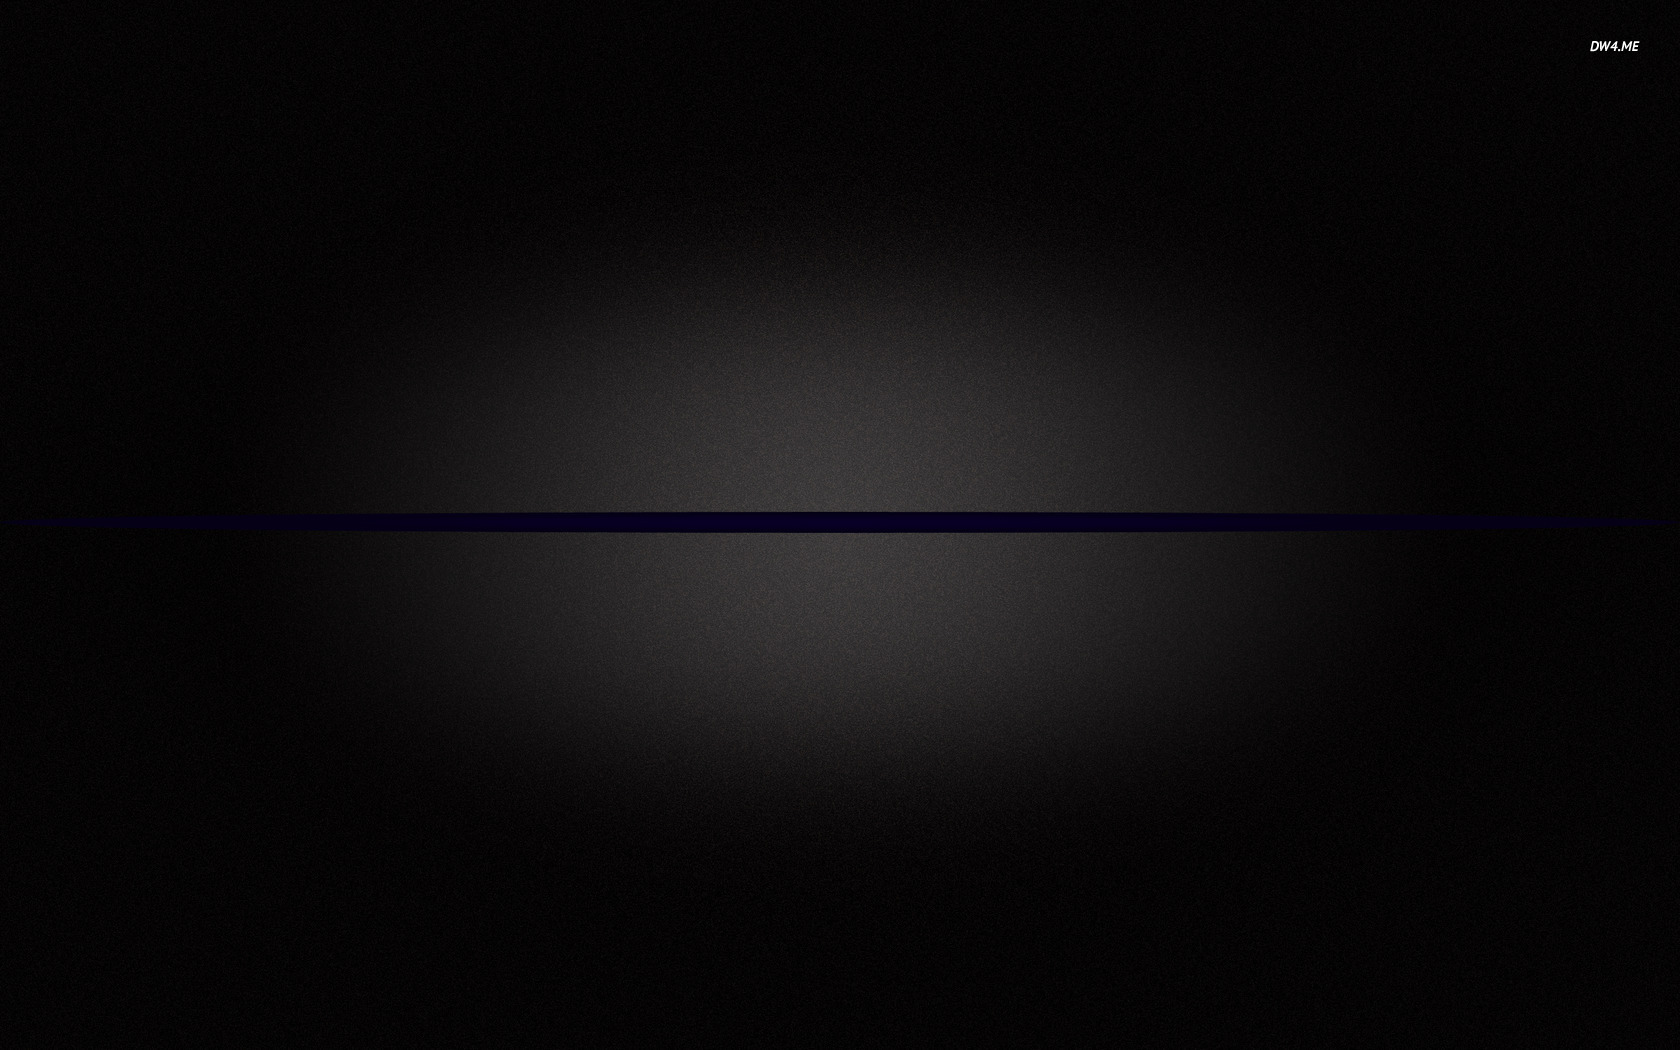 Thin Blue Line Desktop Wallpaper